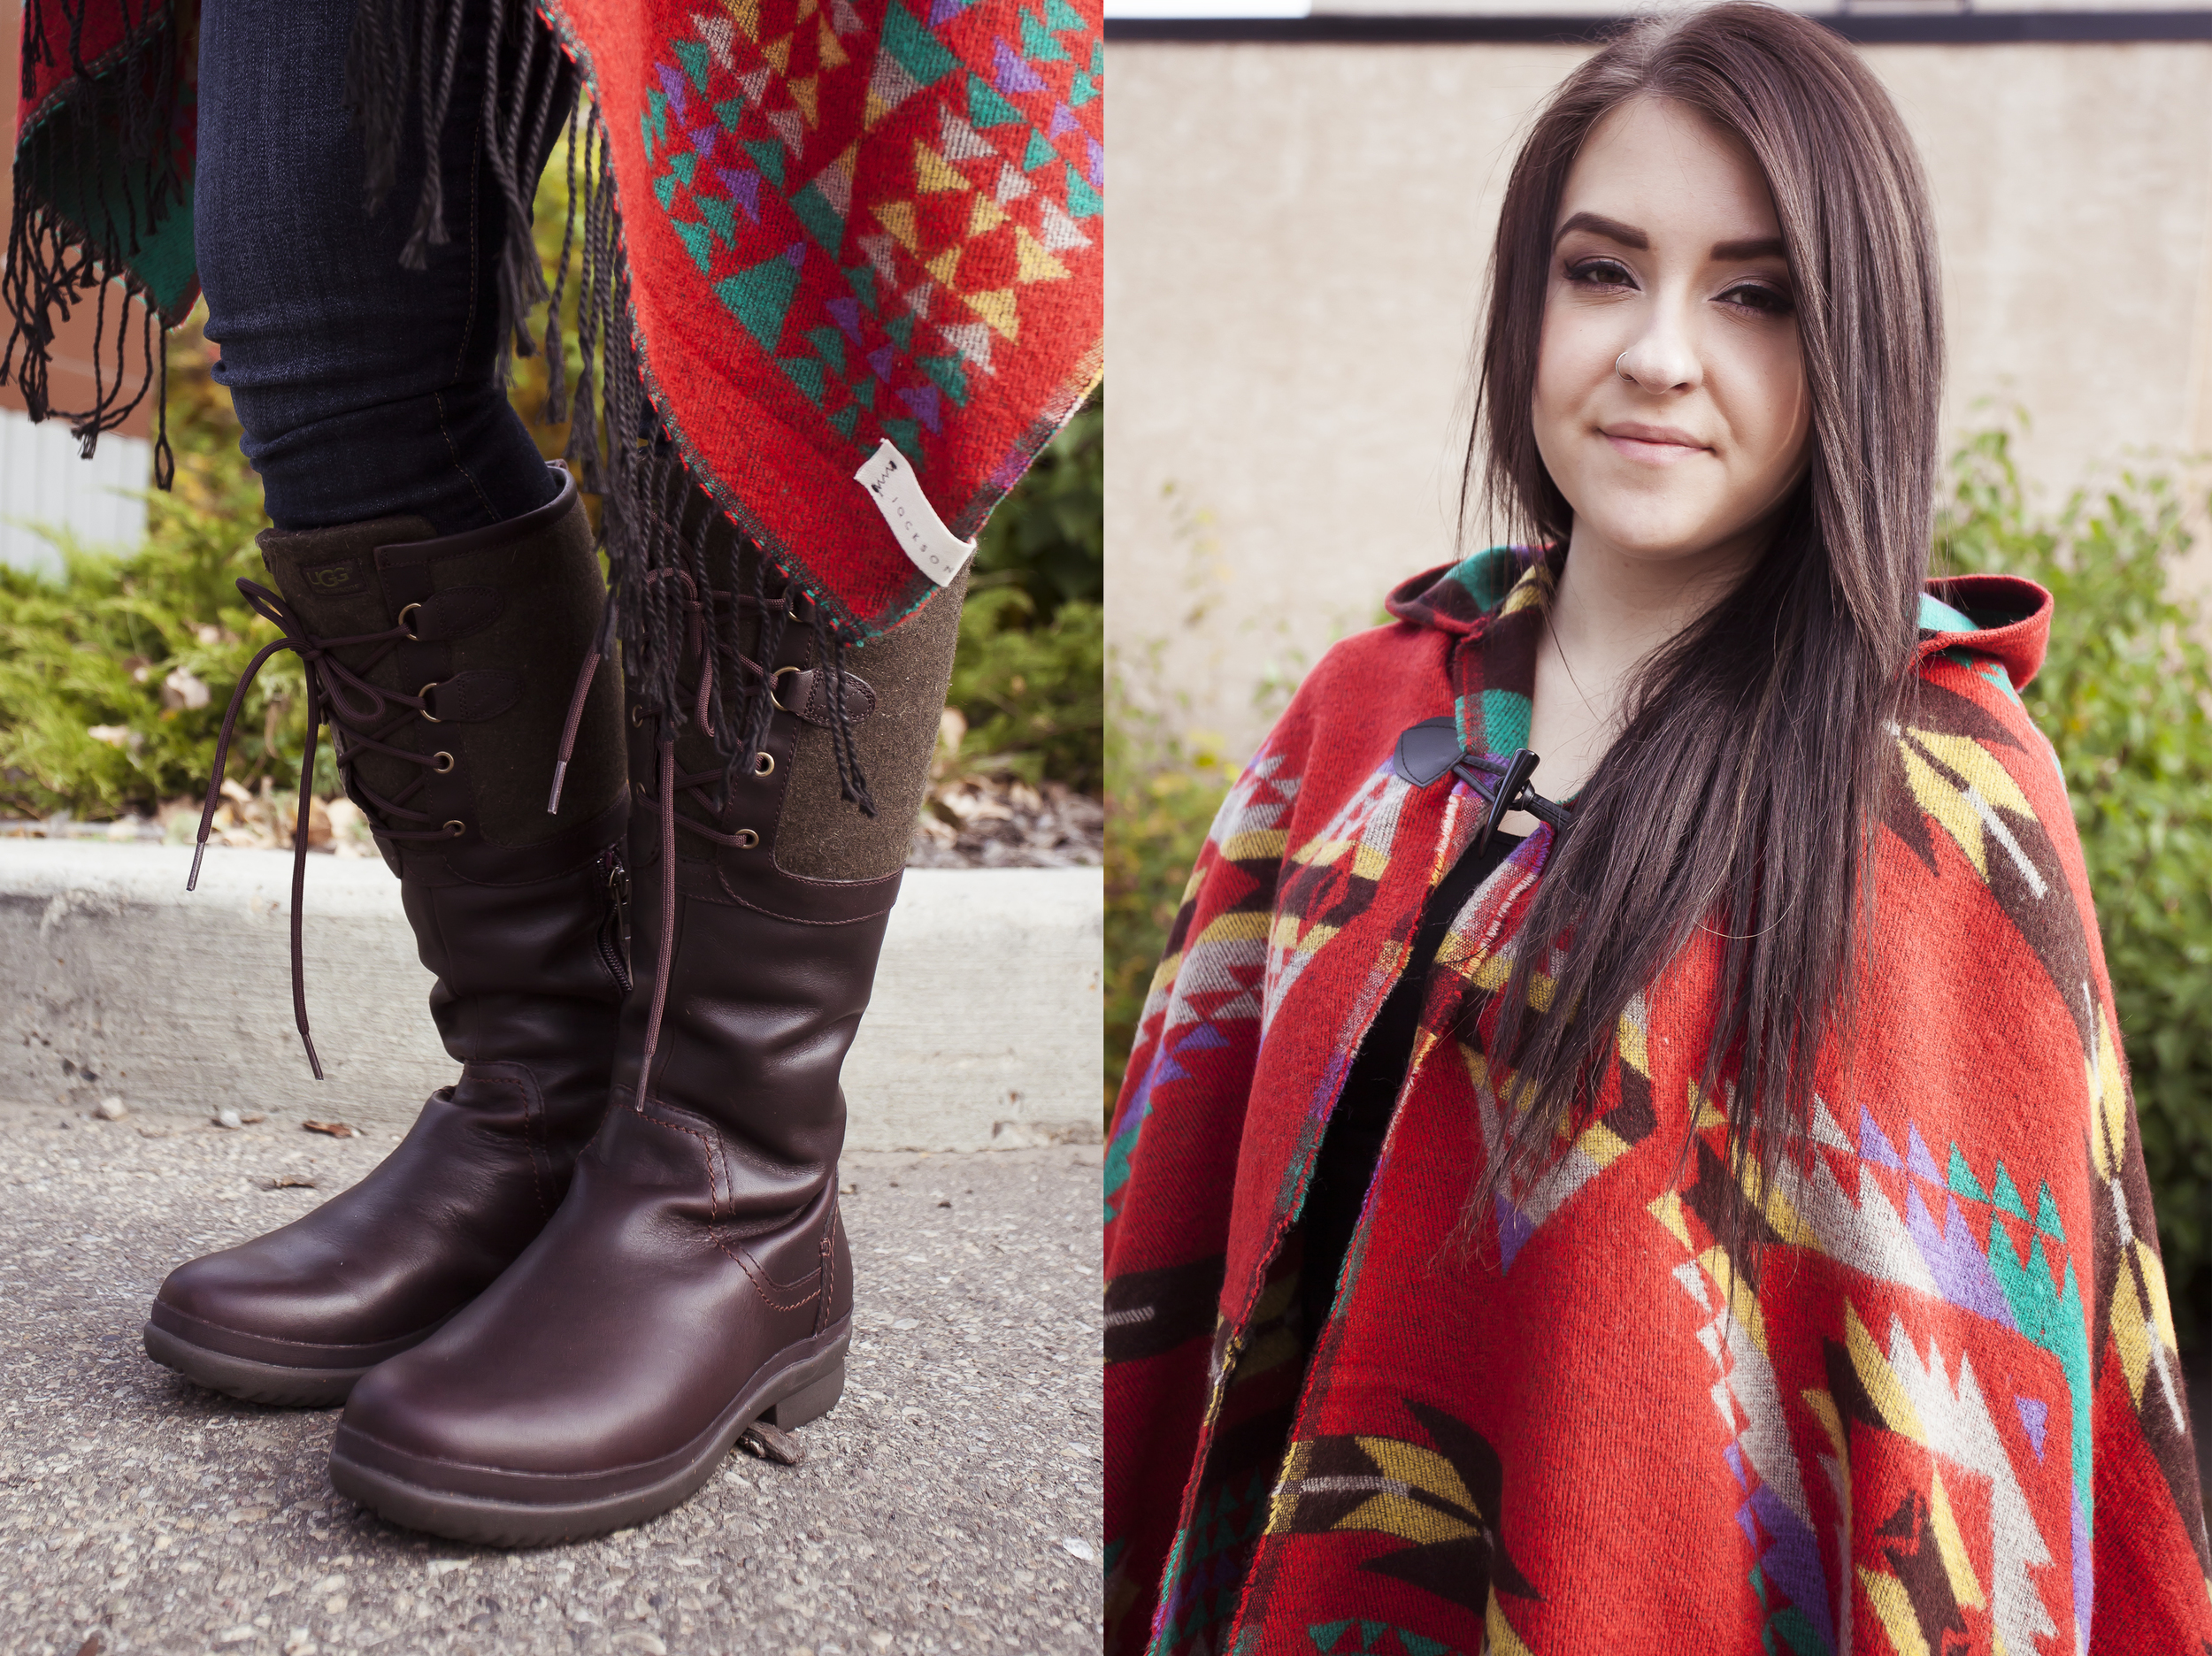 bella maas boutique sherwood park st albert fall 2014 jackson rowe poncho ugg boots jeans 02